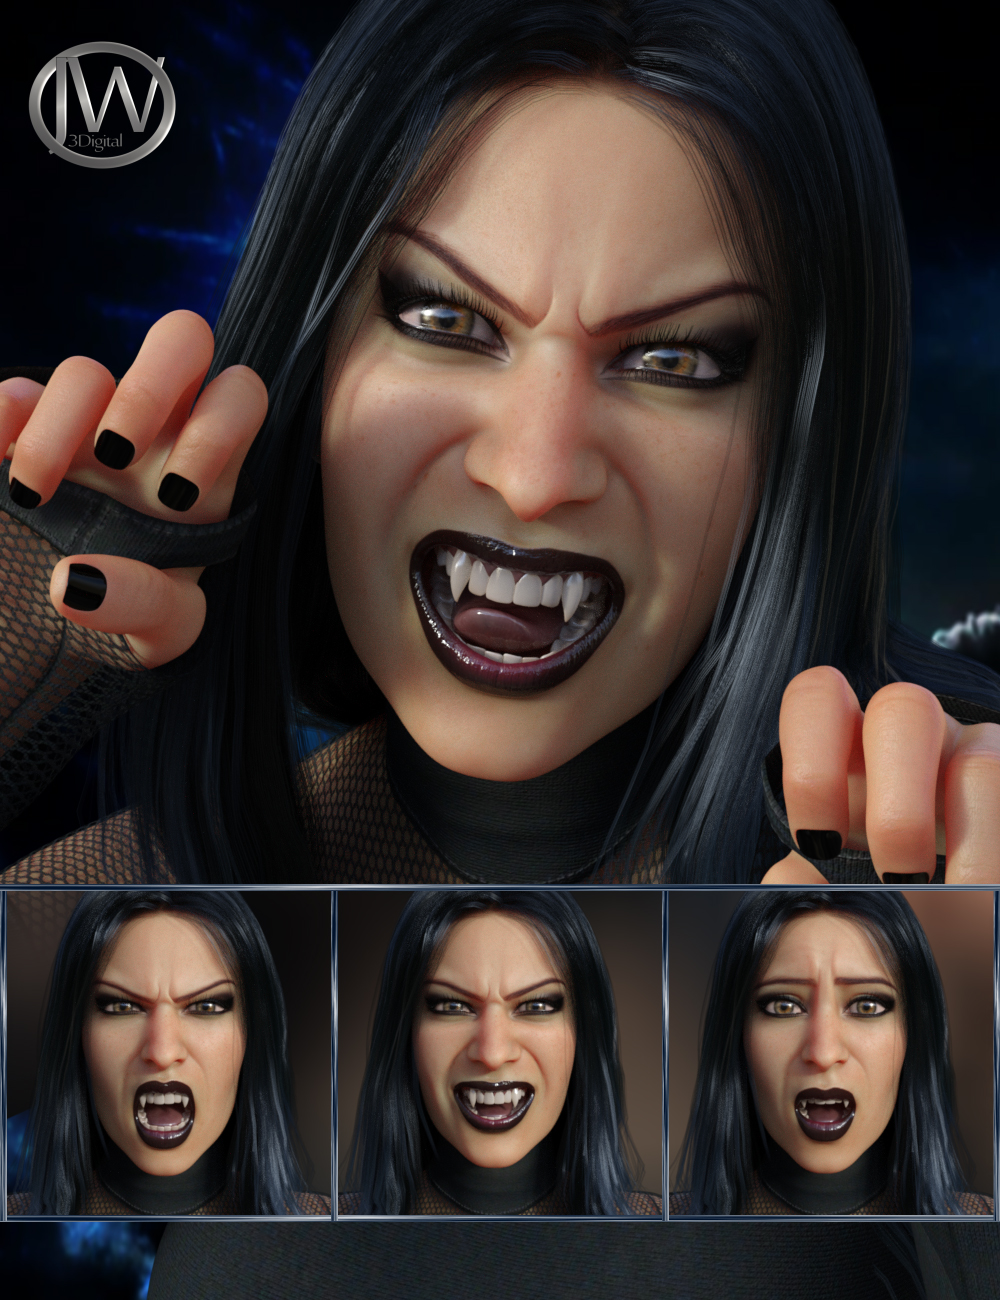 Darkside - Expressions for Genesis 8 Female and Tasha 8 by: JWolf, 3D Models by Daz 3D